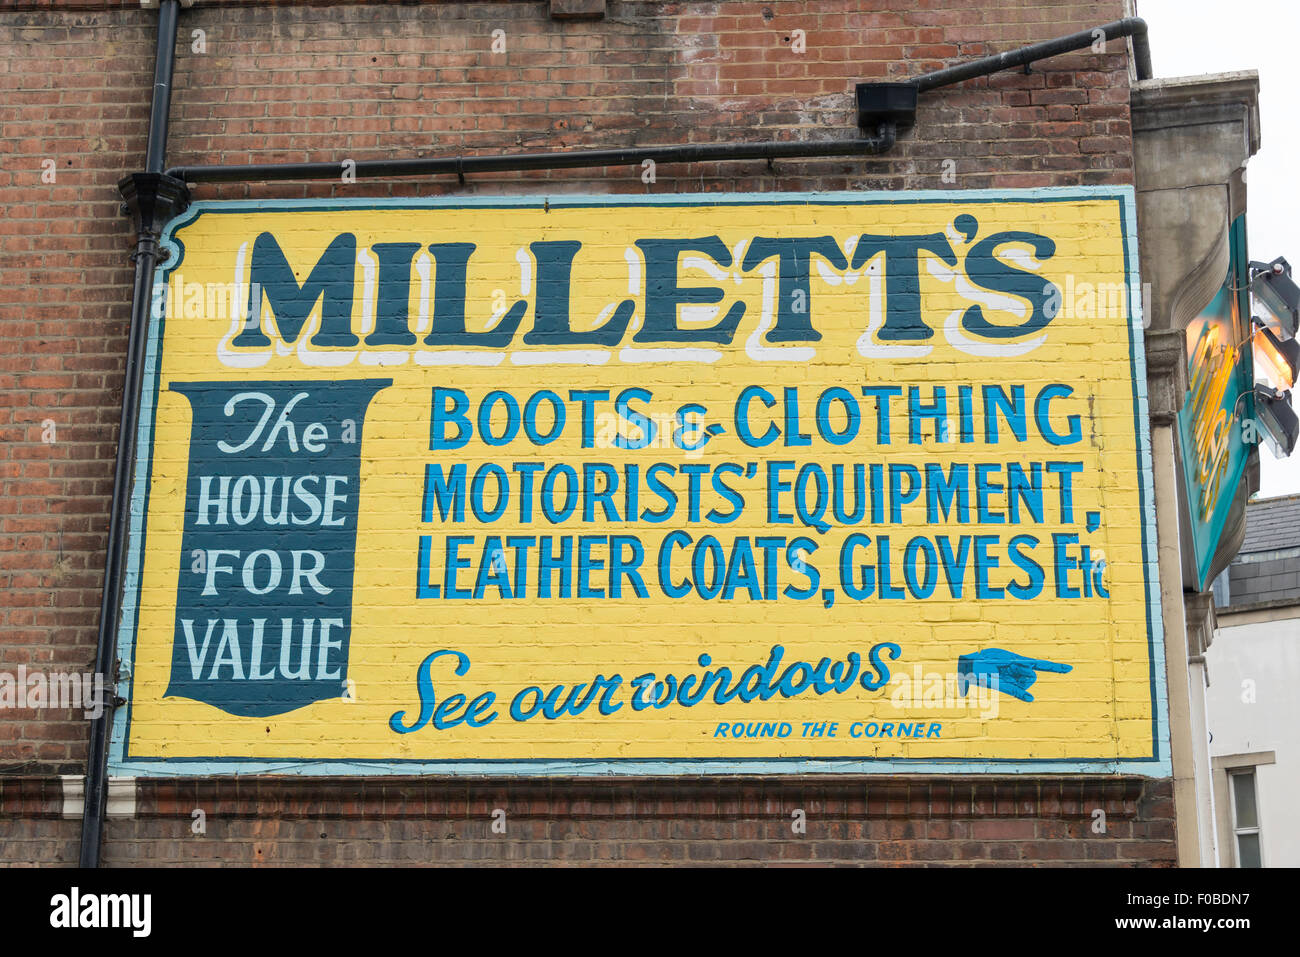 Millett's Store wall sign, Surrey Street, Croydon, London Borough of Croydon, Greater London, England, United - Stock Image